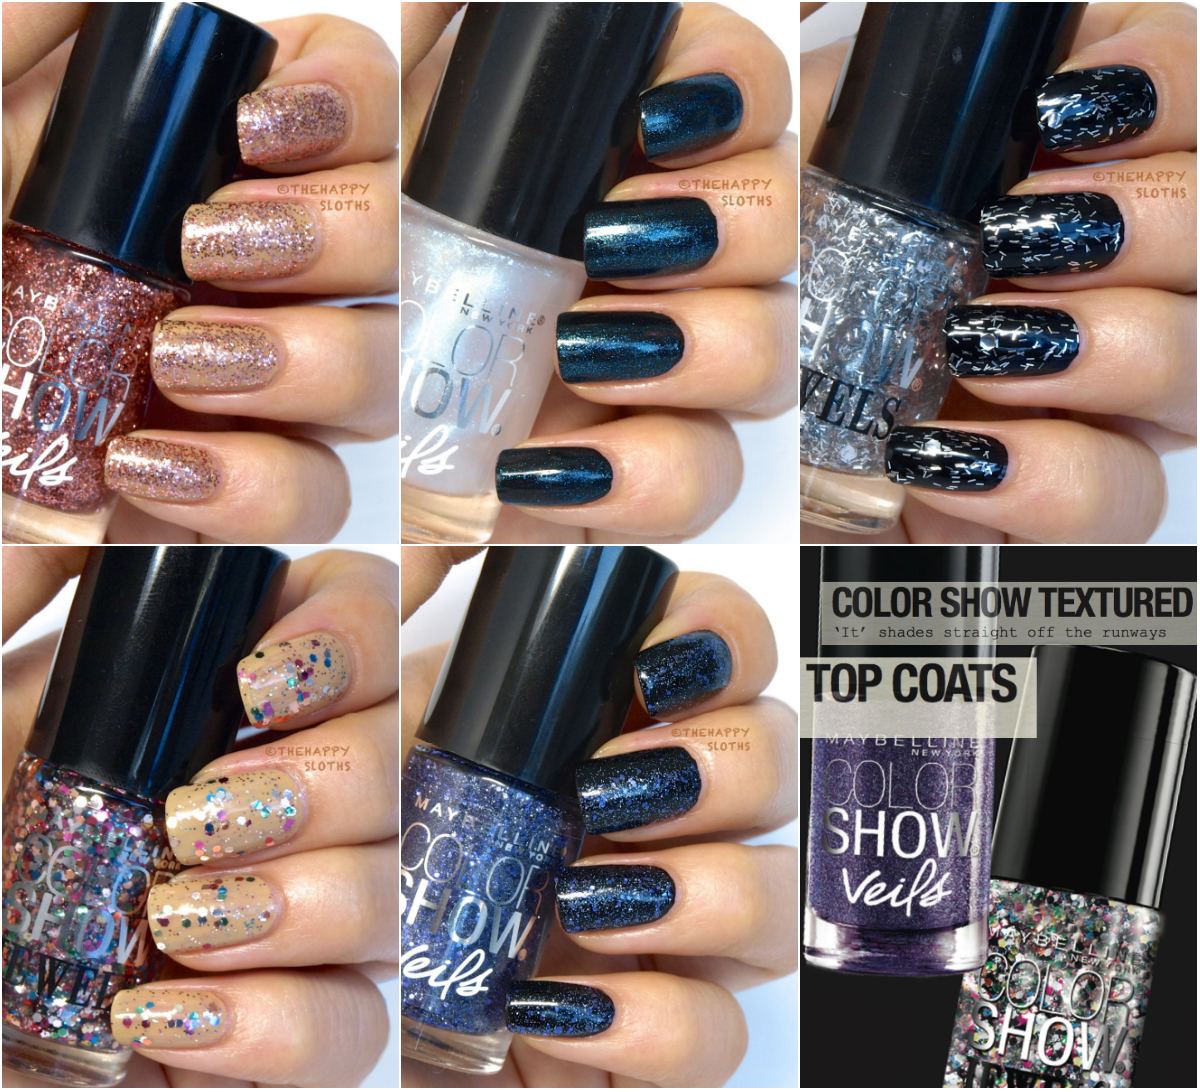 Maybelline Color Show Veils & Jewels Nail Polish: Review and Swatches